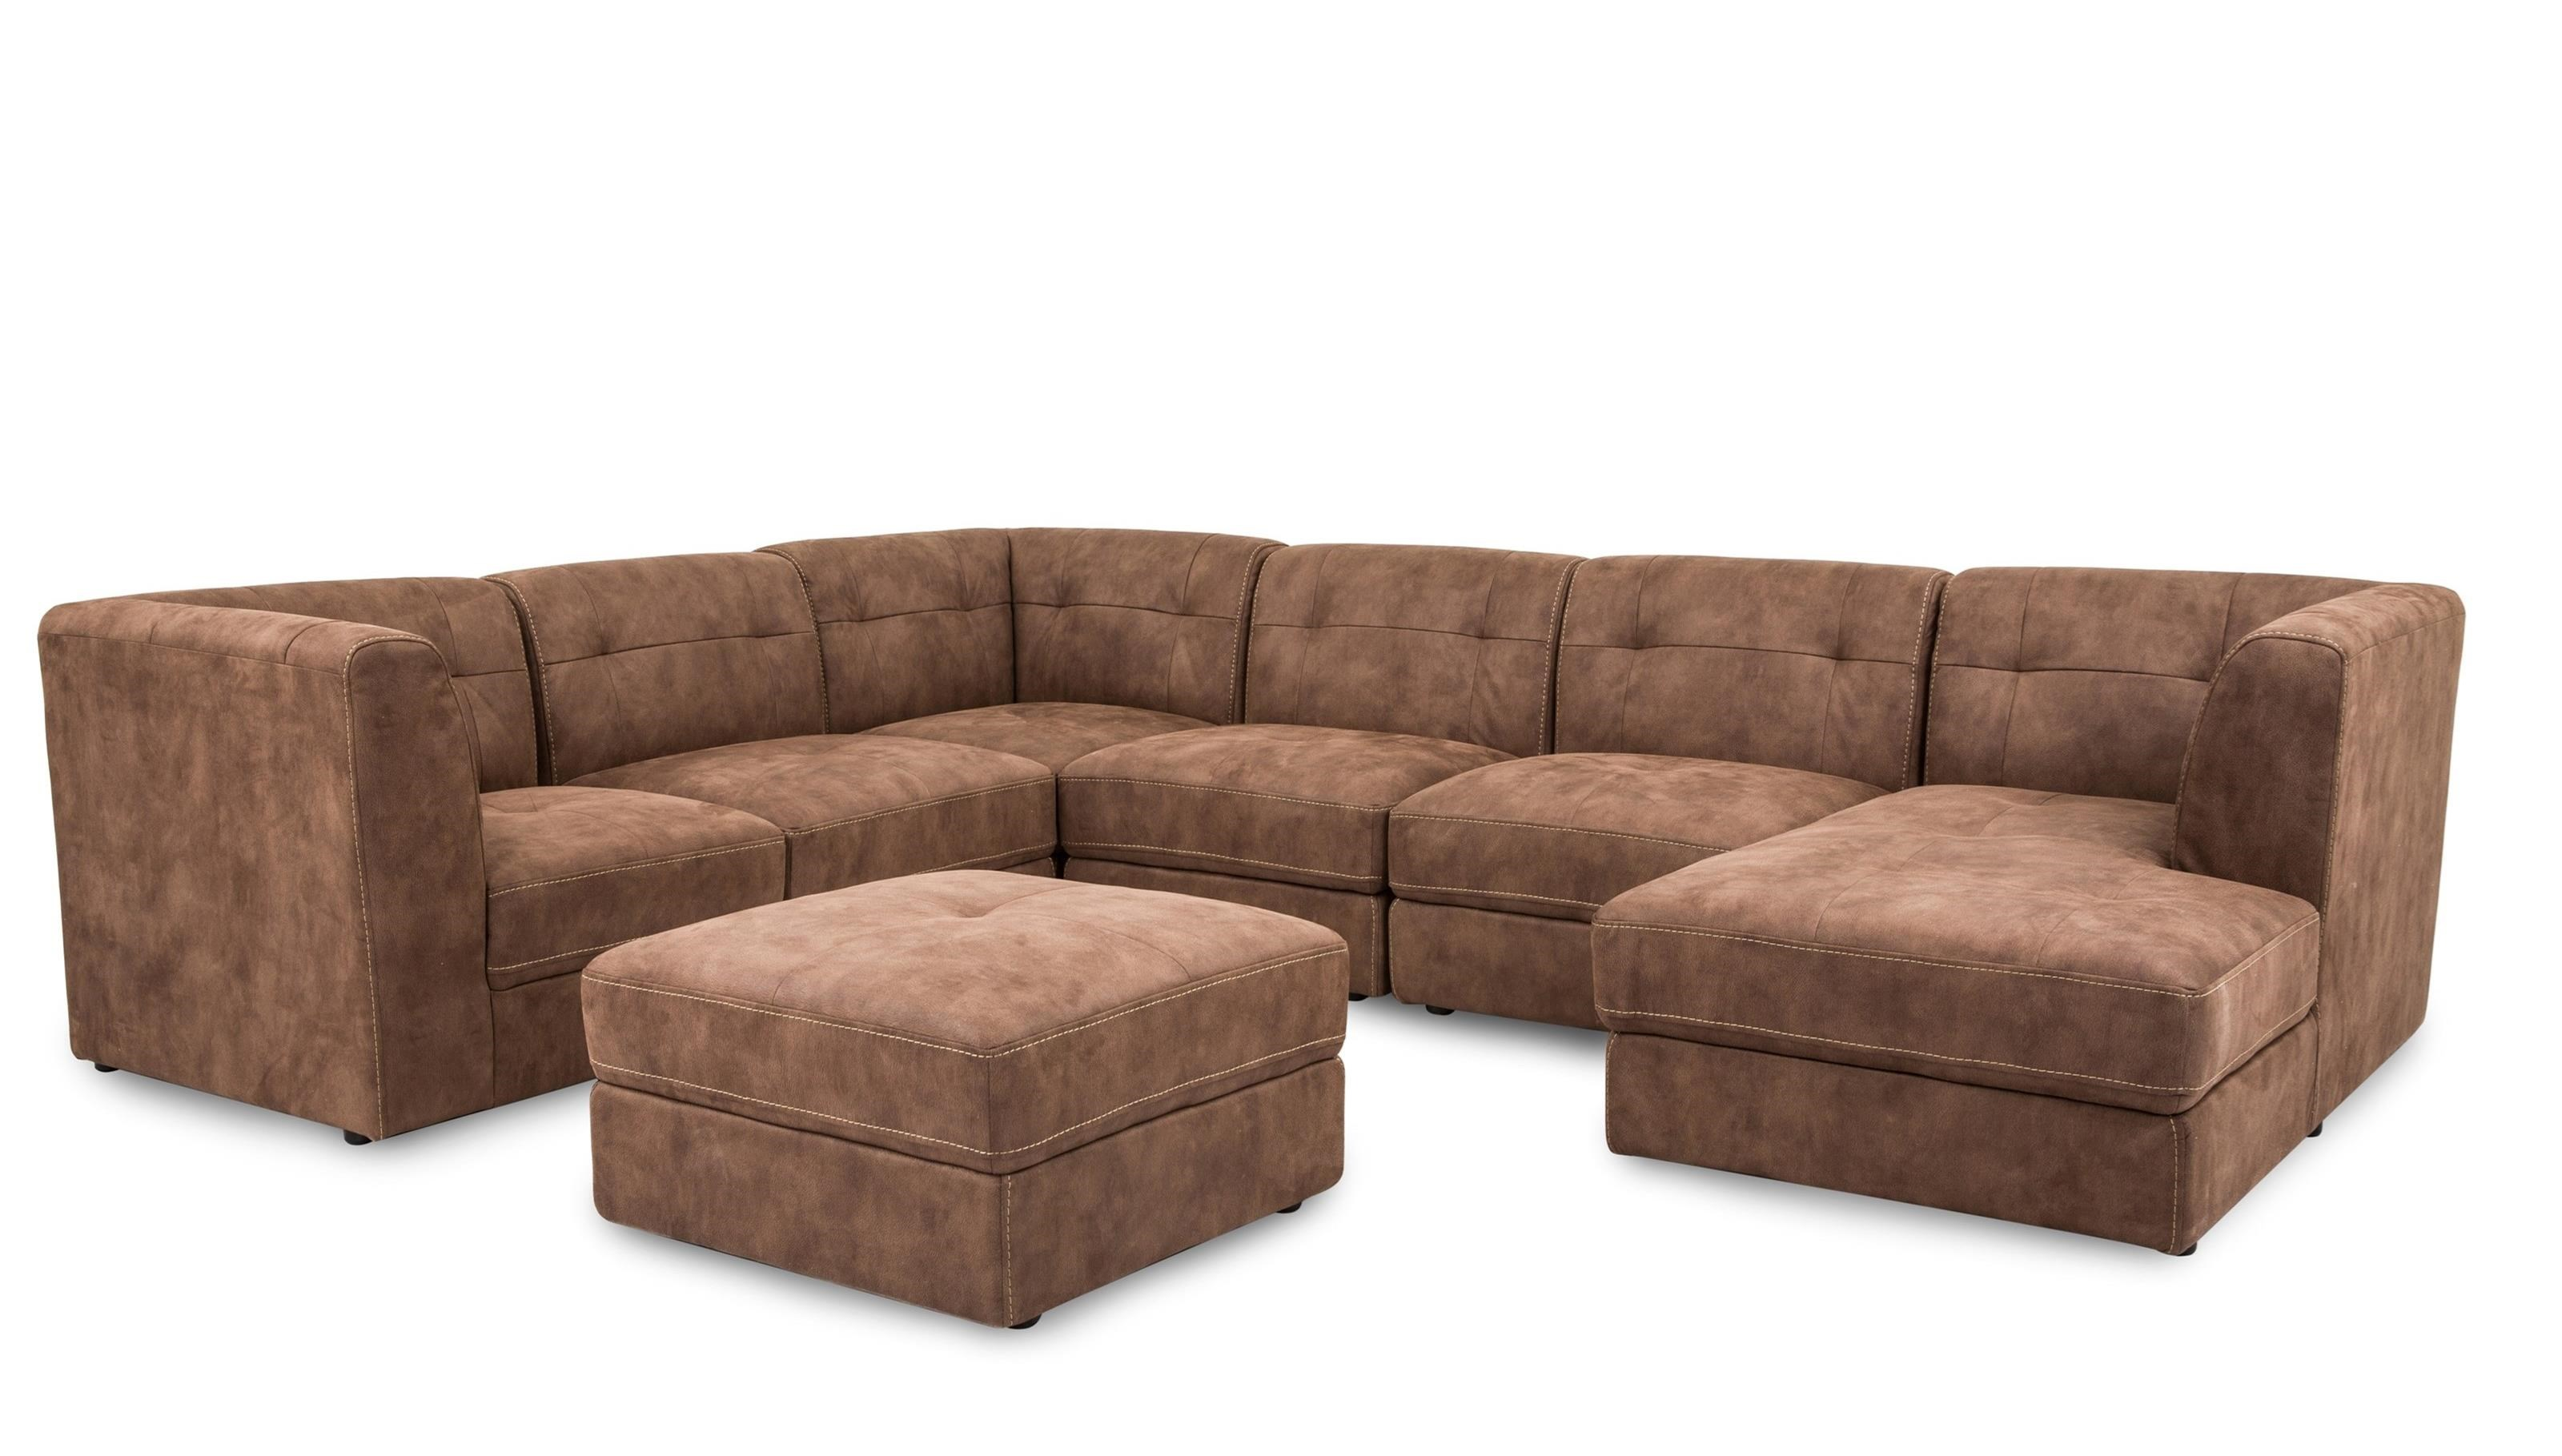 5157 Modular Sectional with Ottoman by Cheers at Lagniappe Home Store